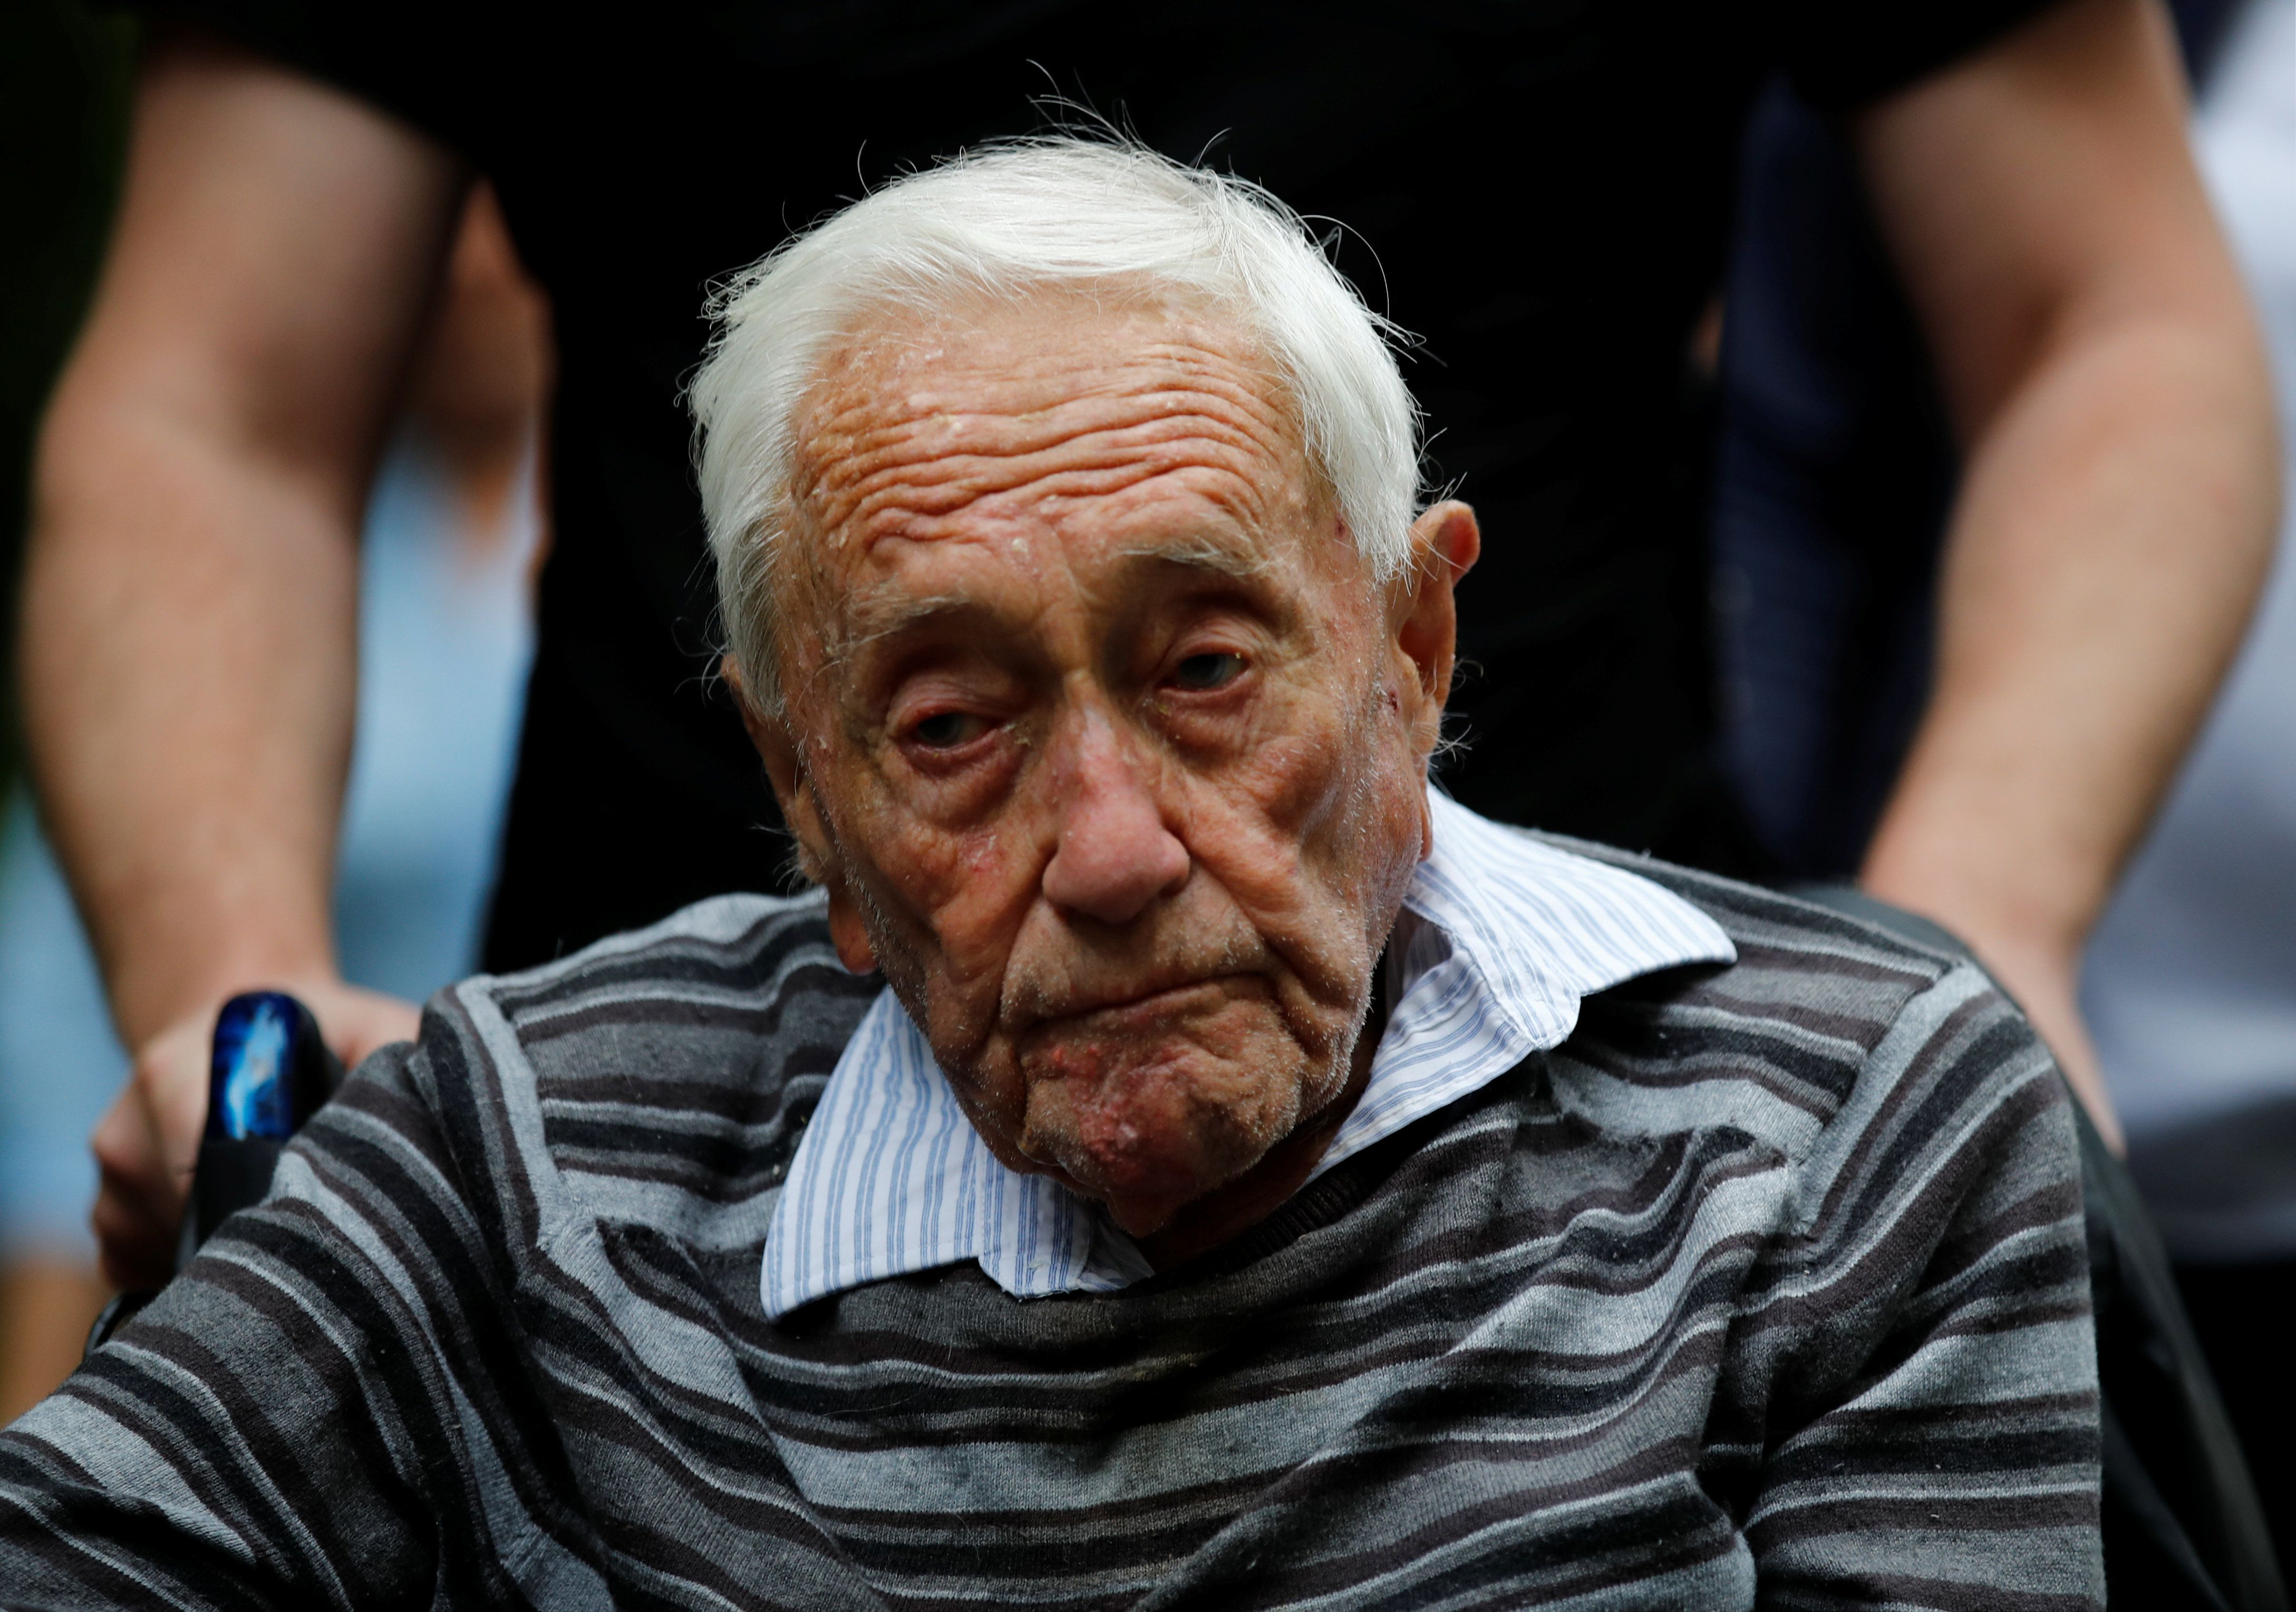 David Goodall, 104, arrives to hold a news conference a day before he intends to take his own life in assisted suicide, in Basel, Switzerland May 9, 2018. REUTERS/Stefan Wermuth